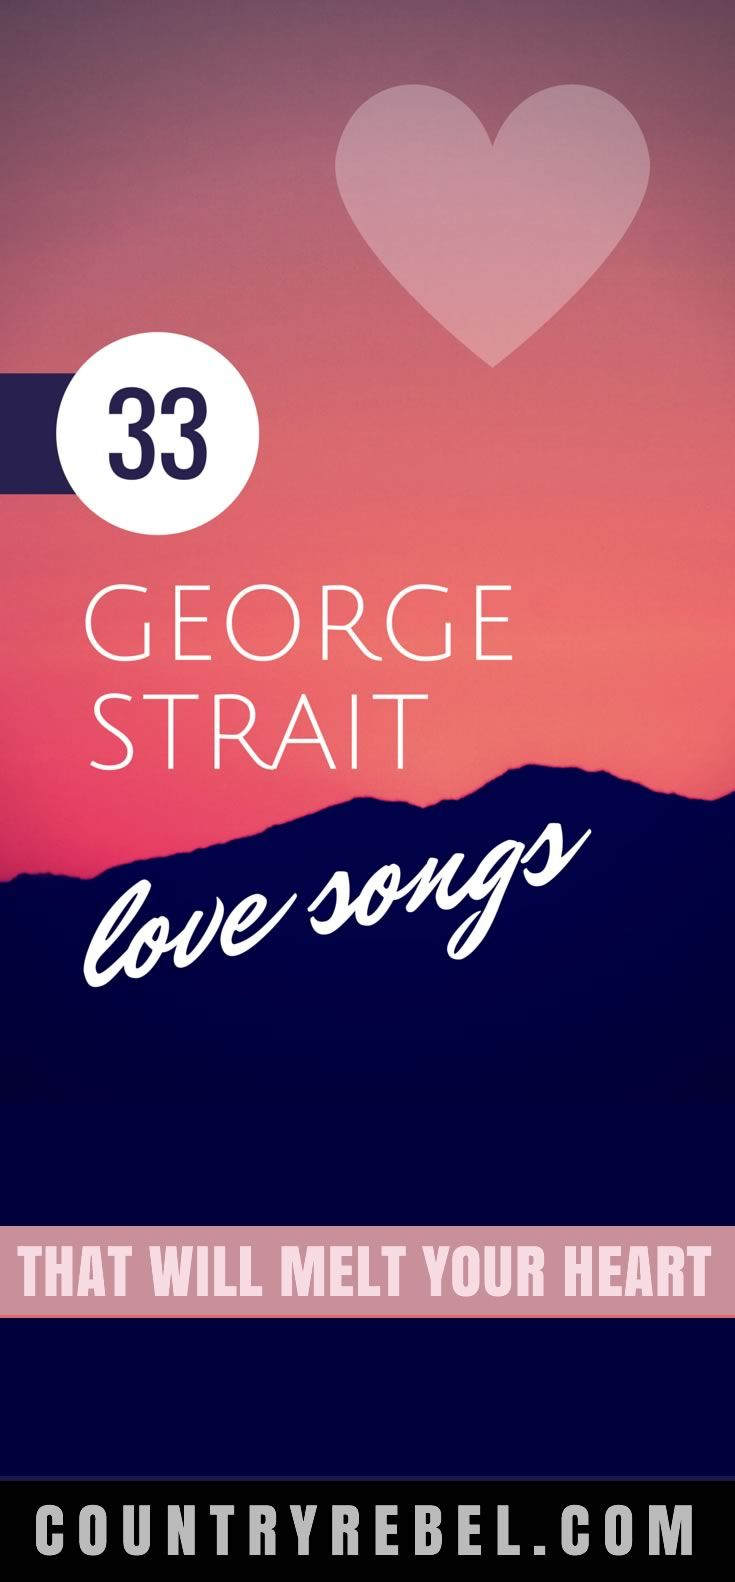 Let's be honest, we can all agree that George Strait really knows how to sing a love song, right? Right. 33 Country Love Songs Playlist by the King of Country >> http://countryrebel.com/blogs/videos/18986215-33-george-strait-love-songs-that-will-melt-your-heart